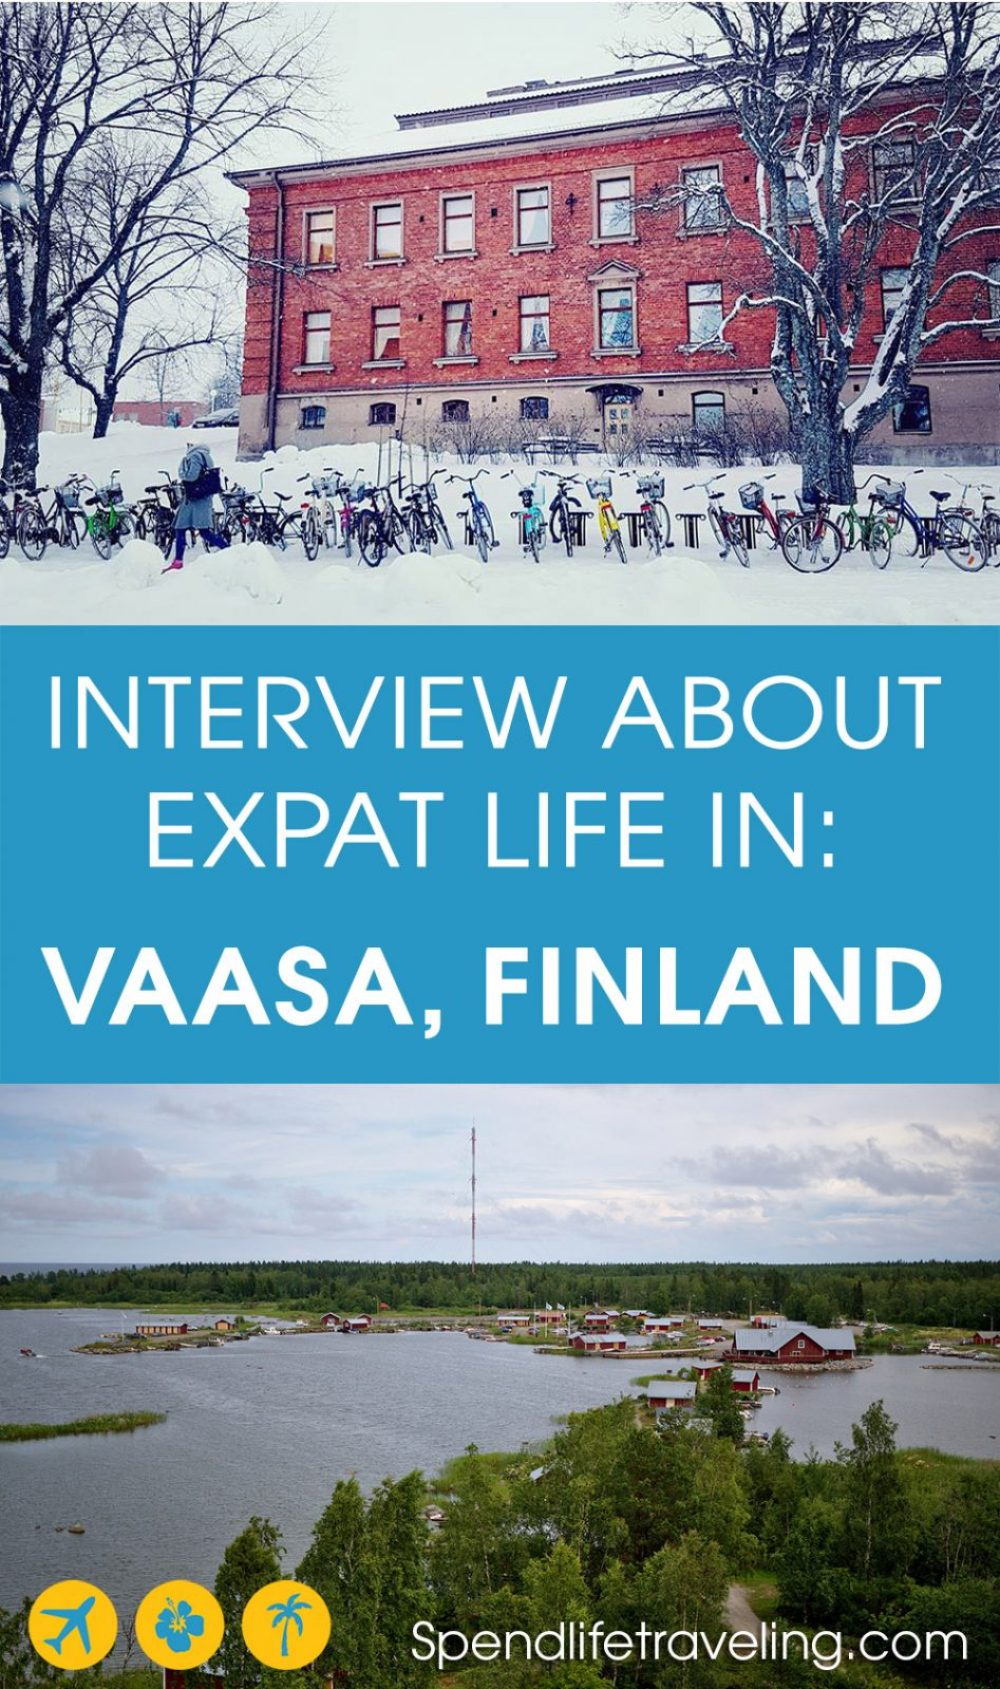 #Vaasa, on Finland's west coast, is a very international city. But what is it really like to move to and live in Vaasa? Check out this interview with an #expat. #moveabroad #workabroad #liveabroad #Finland